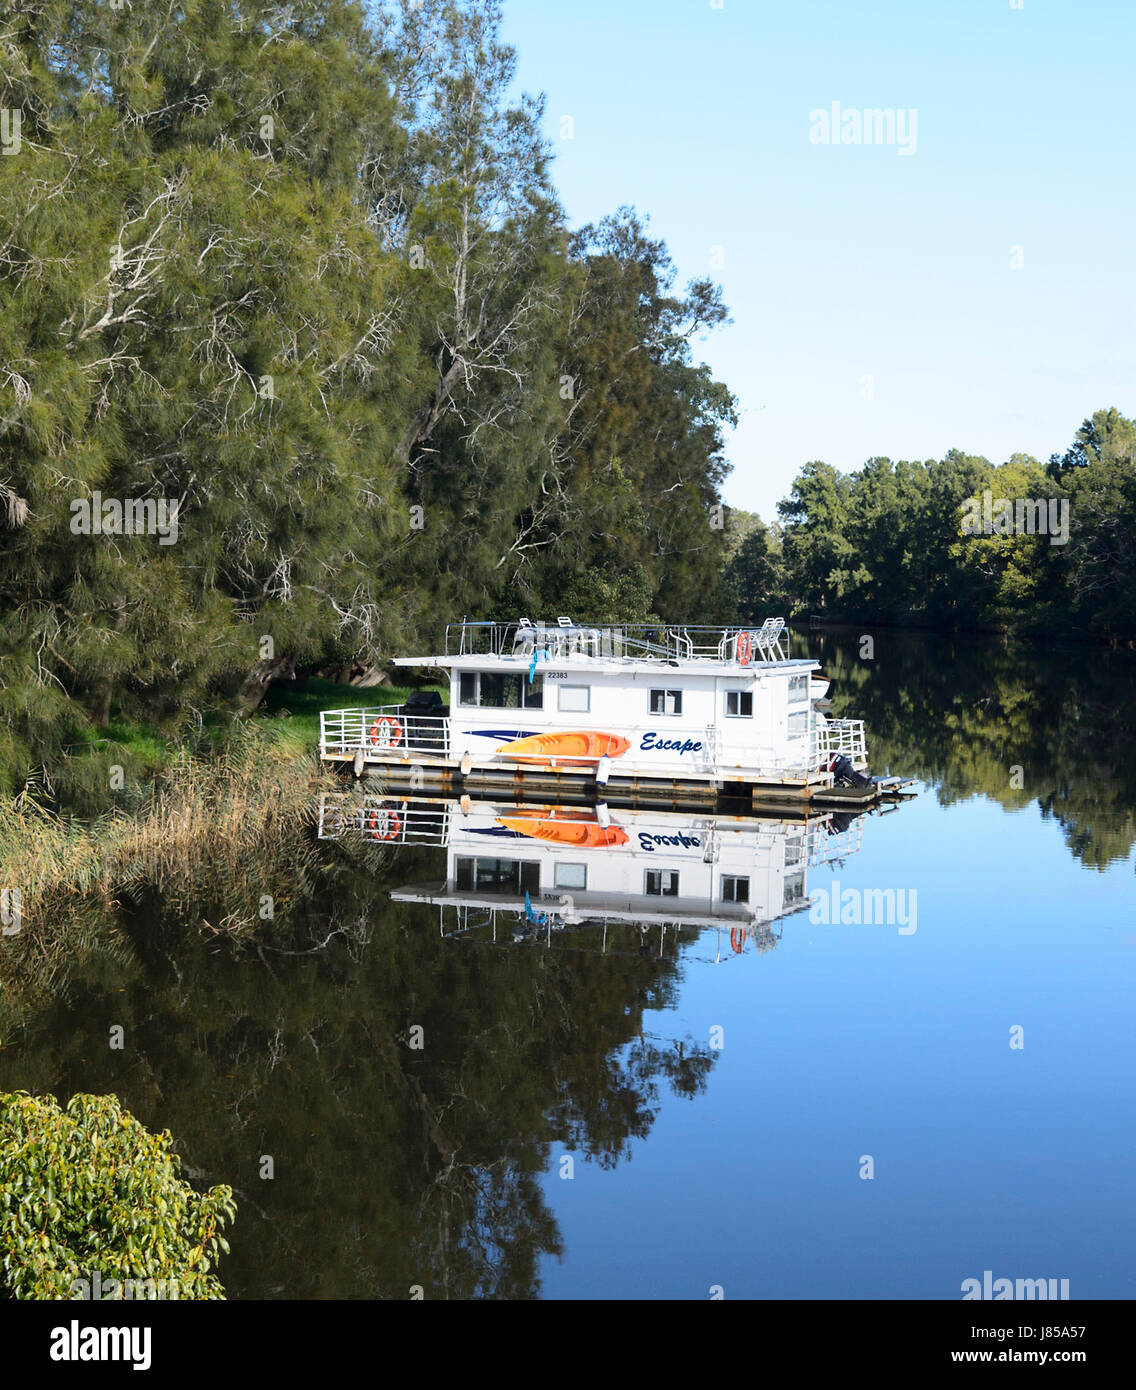 Holiday Boat at Broughton Creek, near Berry, New South Wales, NSW, Australia - Stock Image